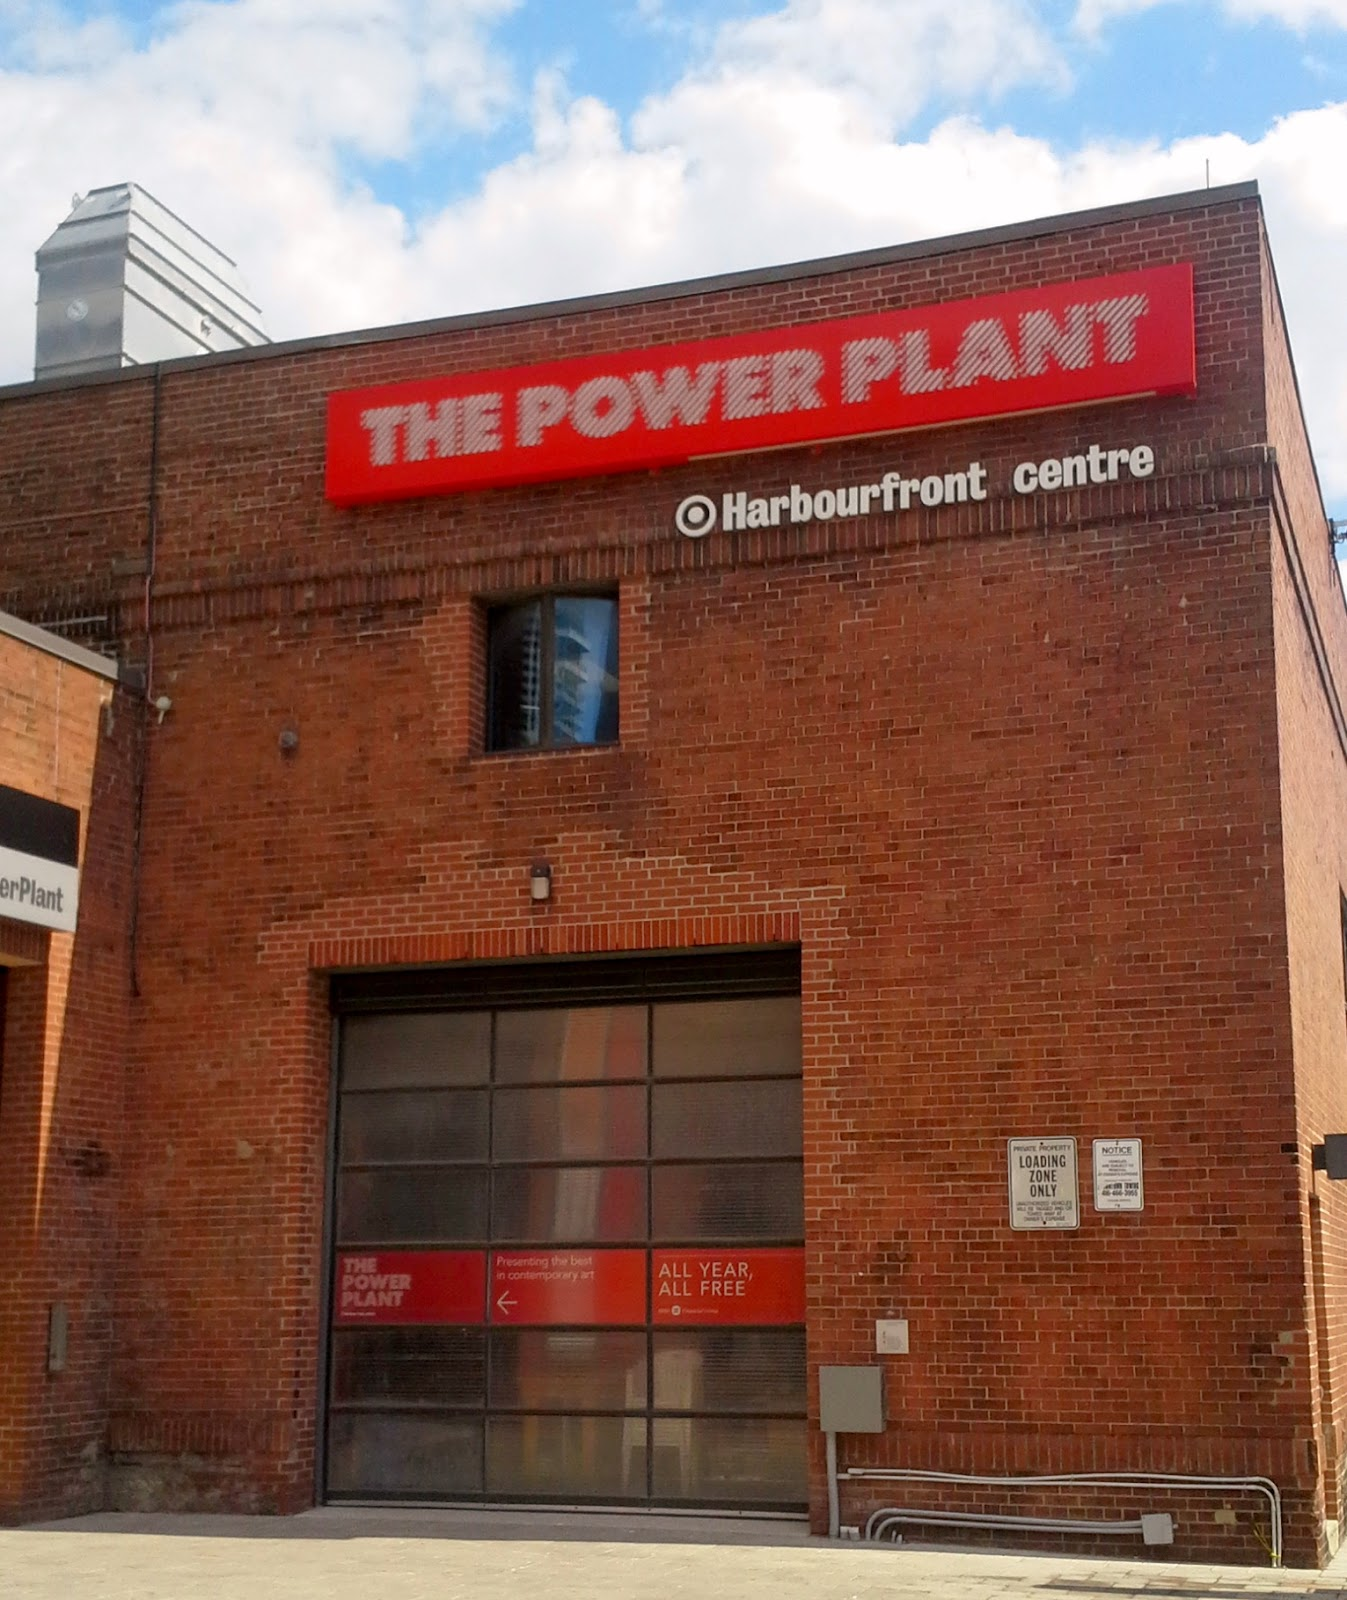 The Power Plant Contemporary Art Gallery at Harboufront Centre in Toronto, Melanie_ps, Culture, Exhibit, Exhibition, free, Ontrario, Canada